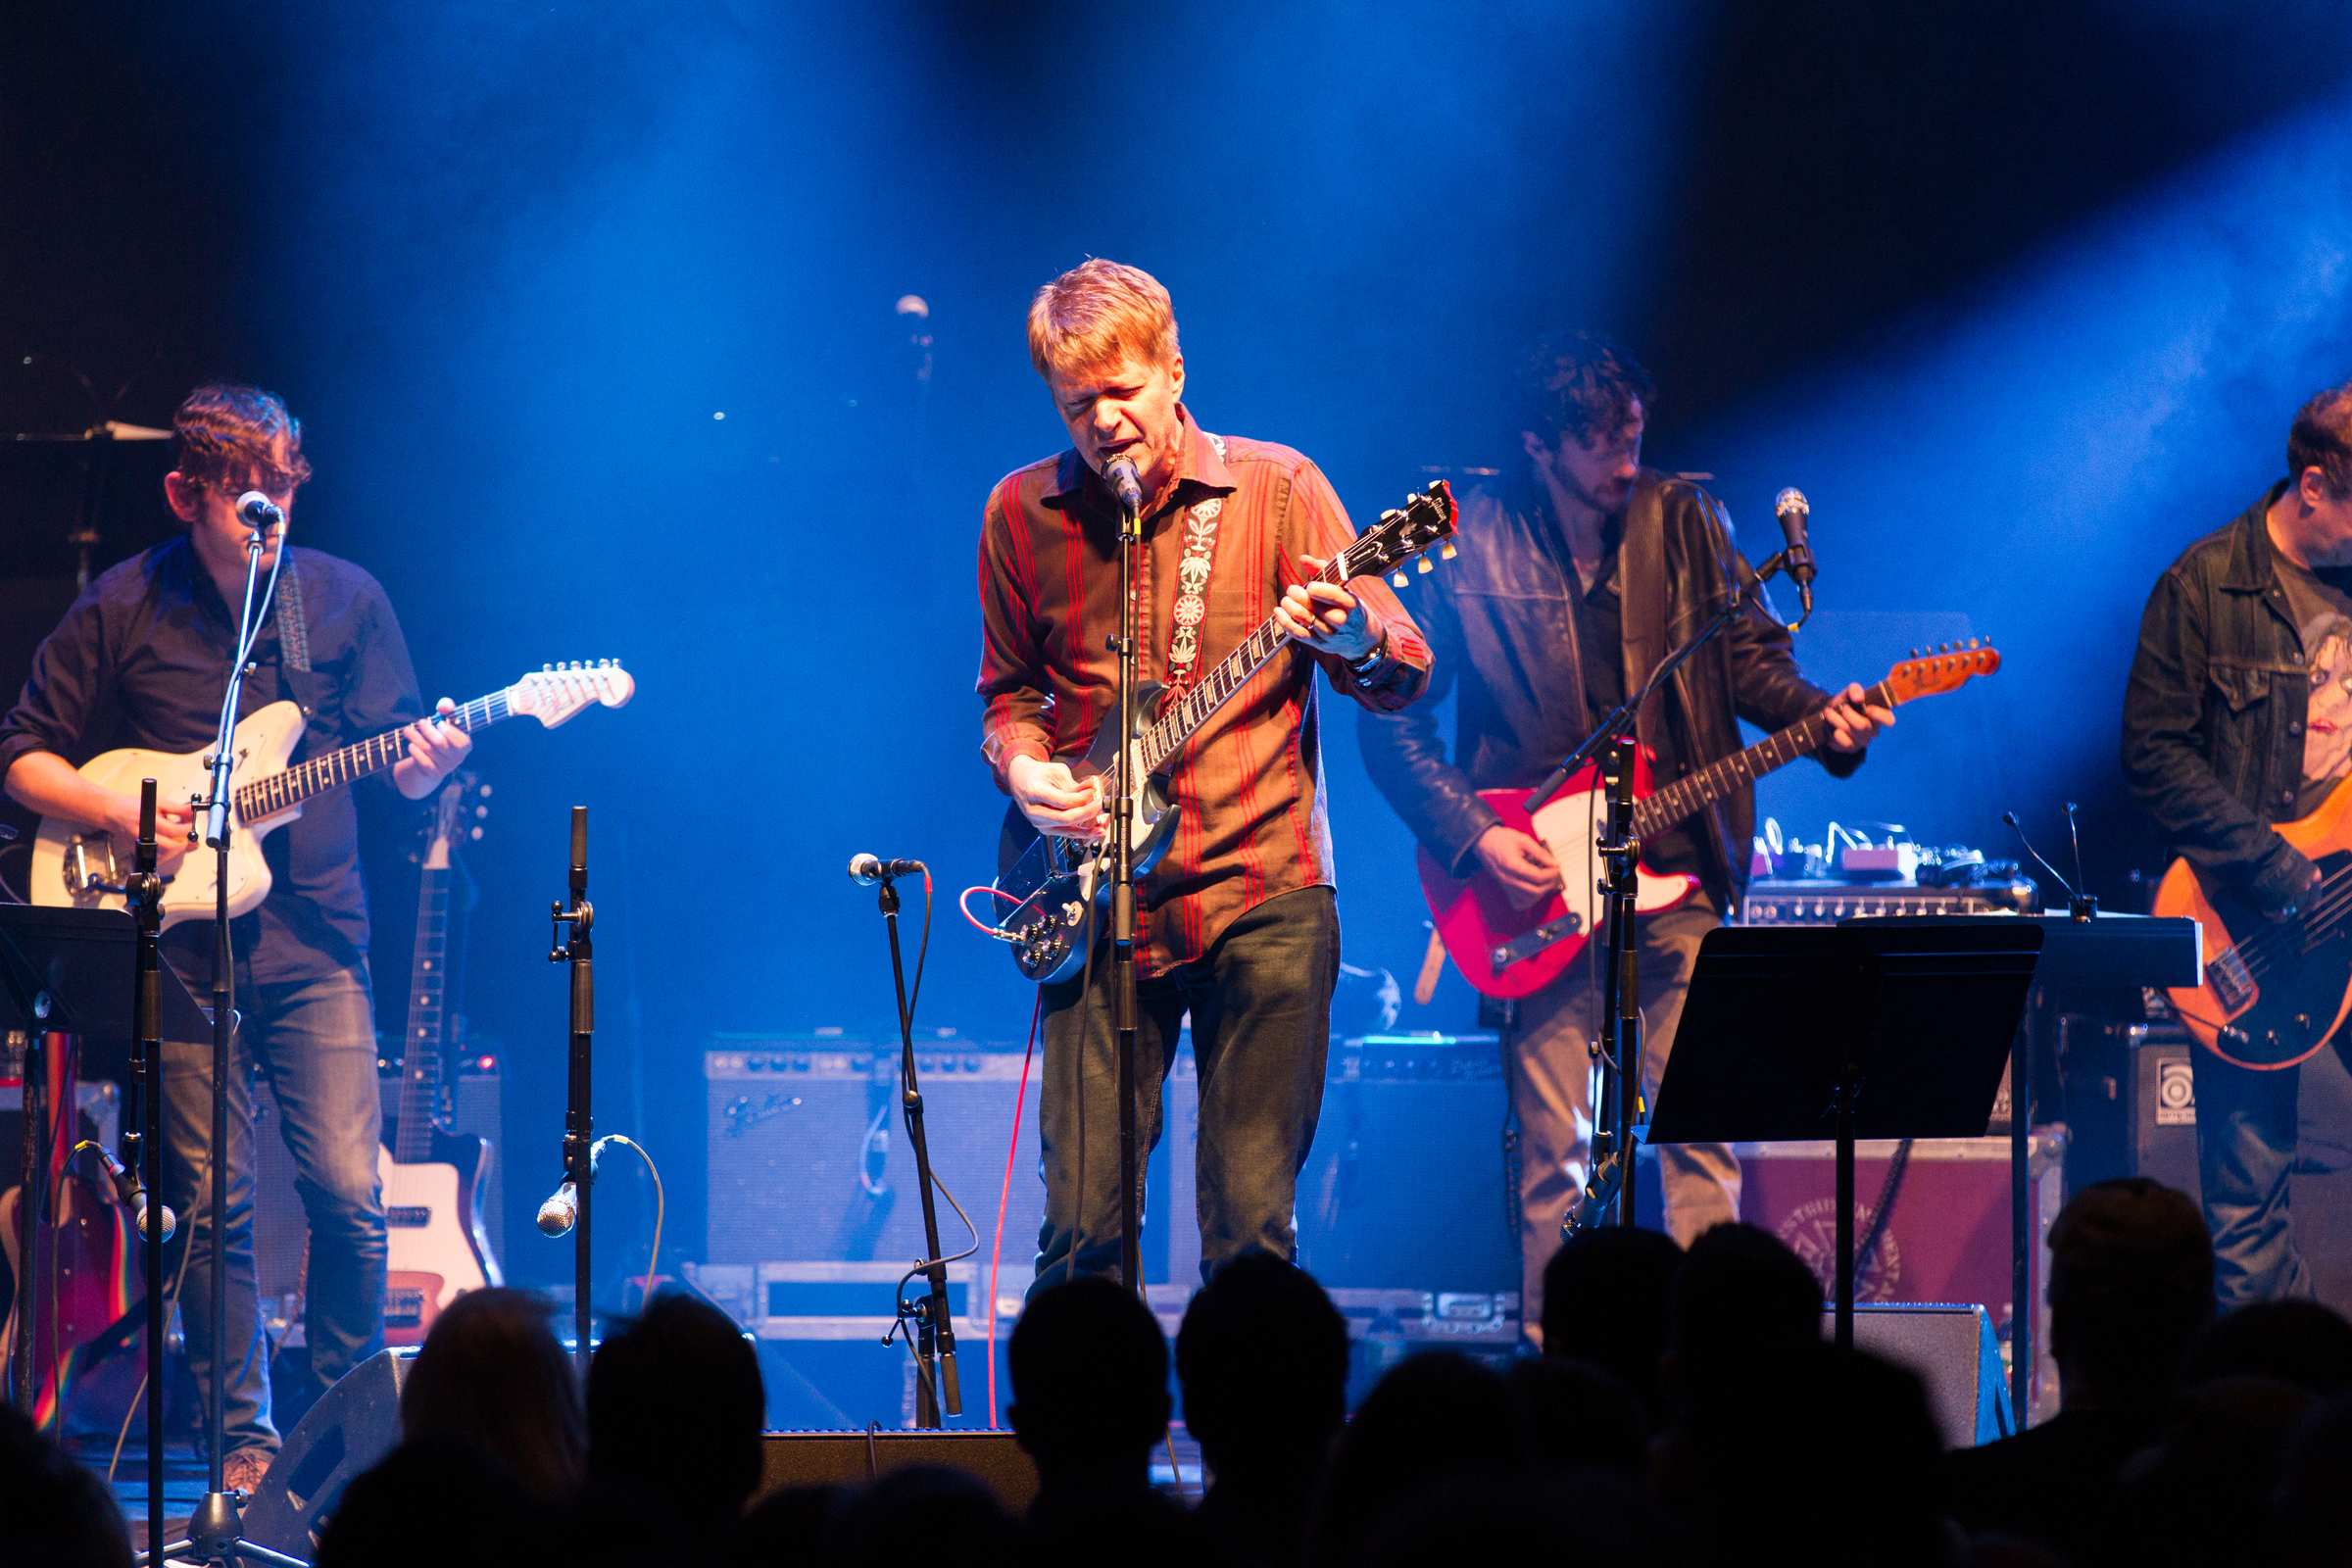 PT CHESTER, NY - NOVEMBER 27:  L-R Josh Cohen and Nels Cline of Wilco perform during The Last Waltz Show at The Capitol Theat